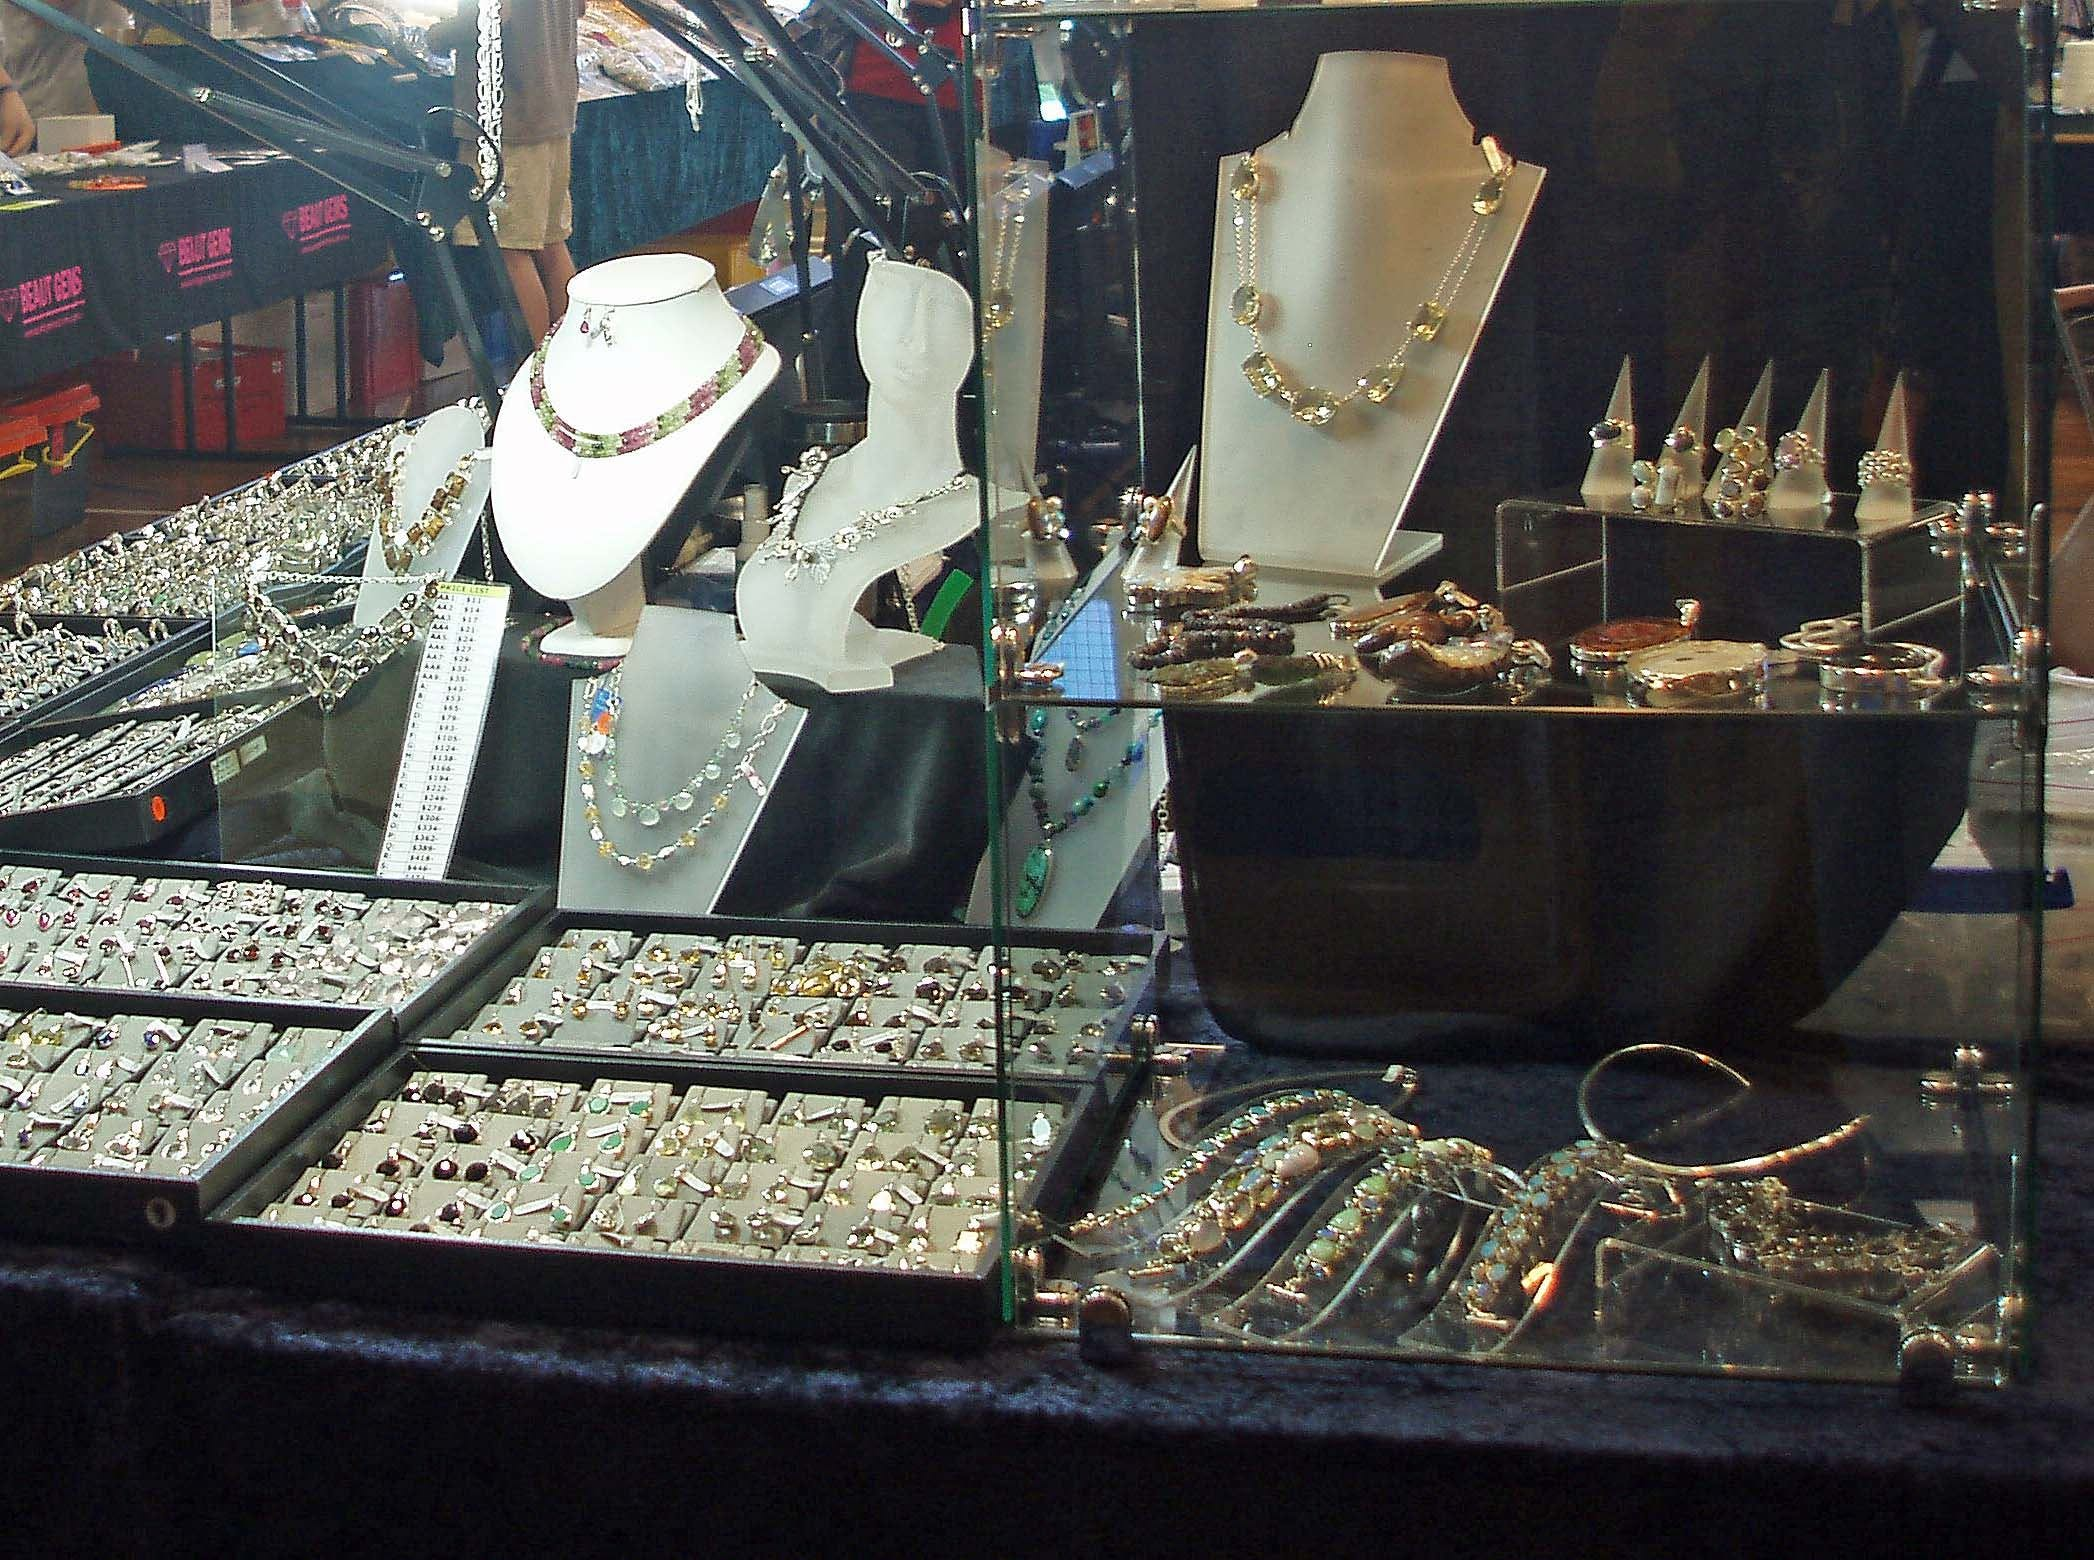 Toowoomba Gemfest - Gems and Jewellery - Accommodation Search